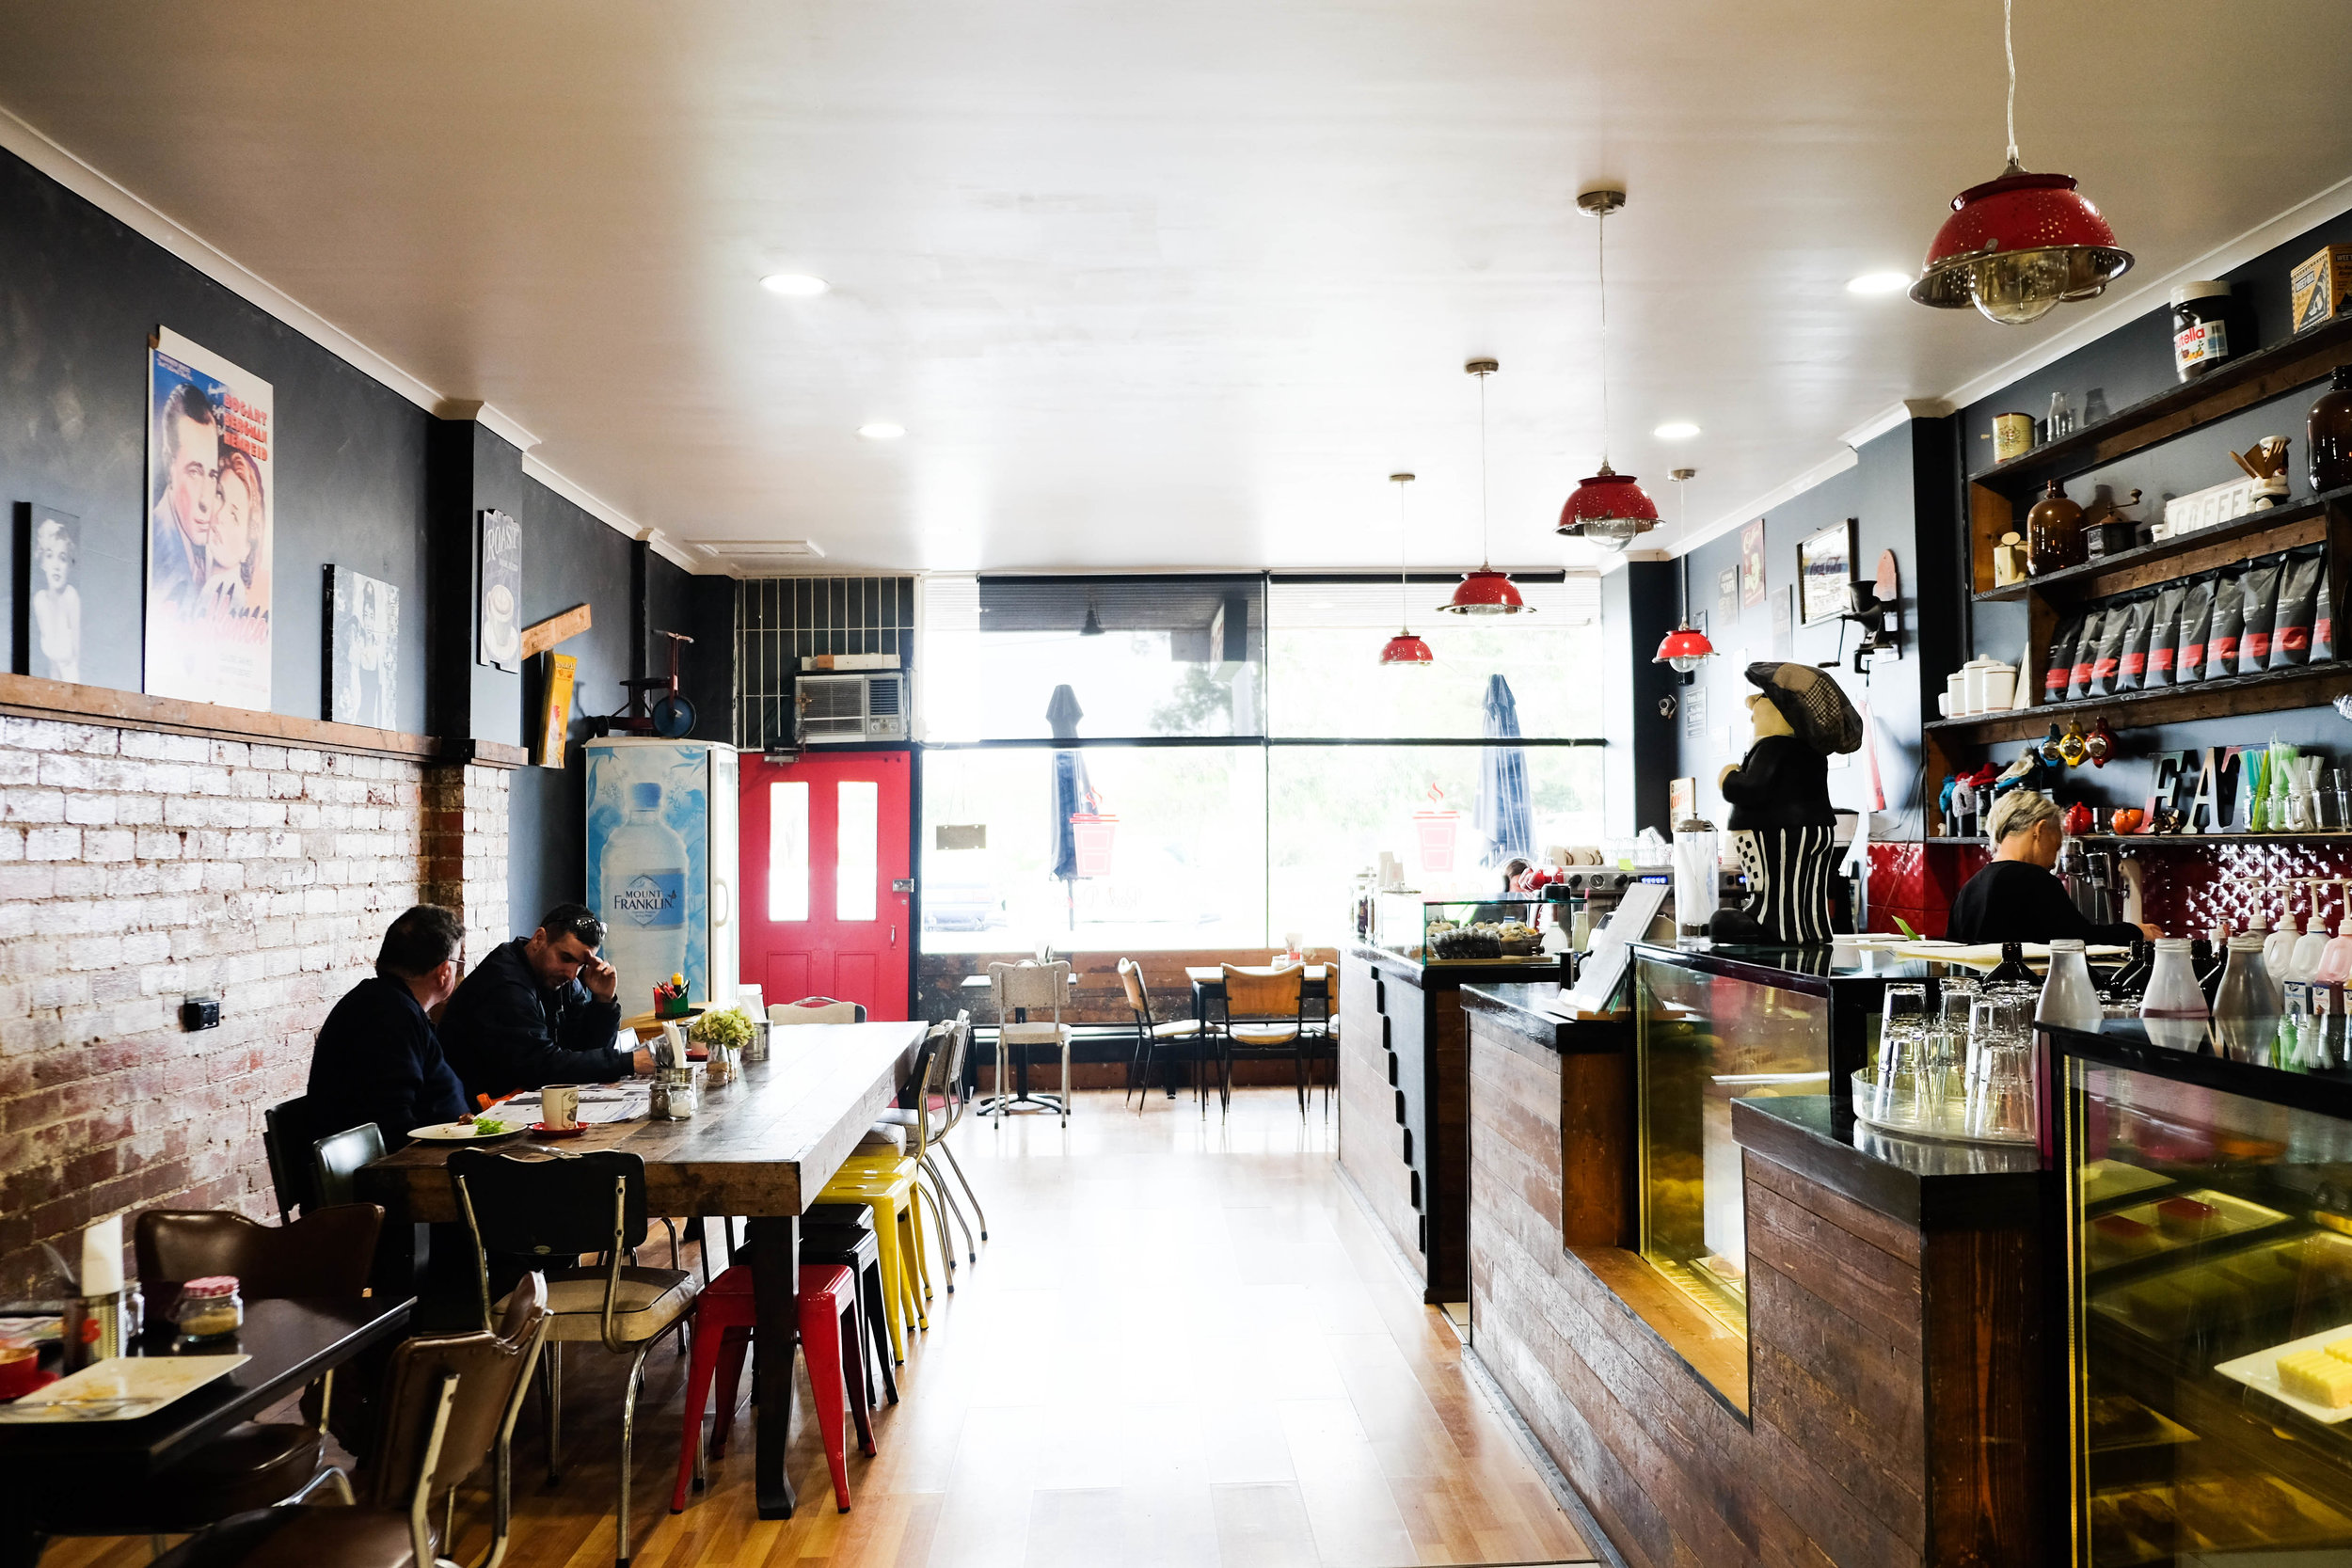 red door cafe, kingsbury - mamma knows north